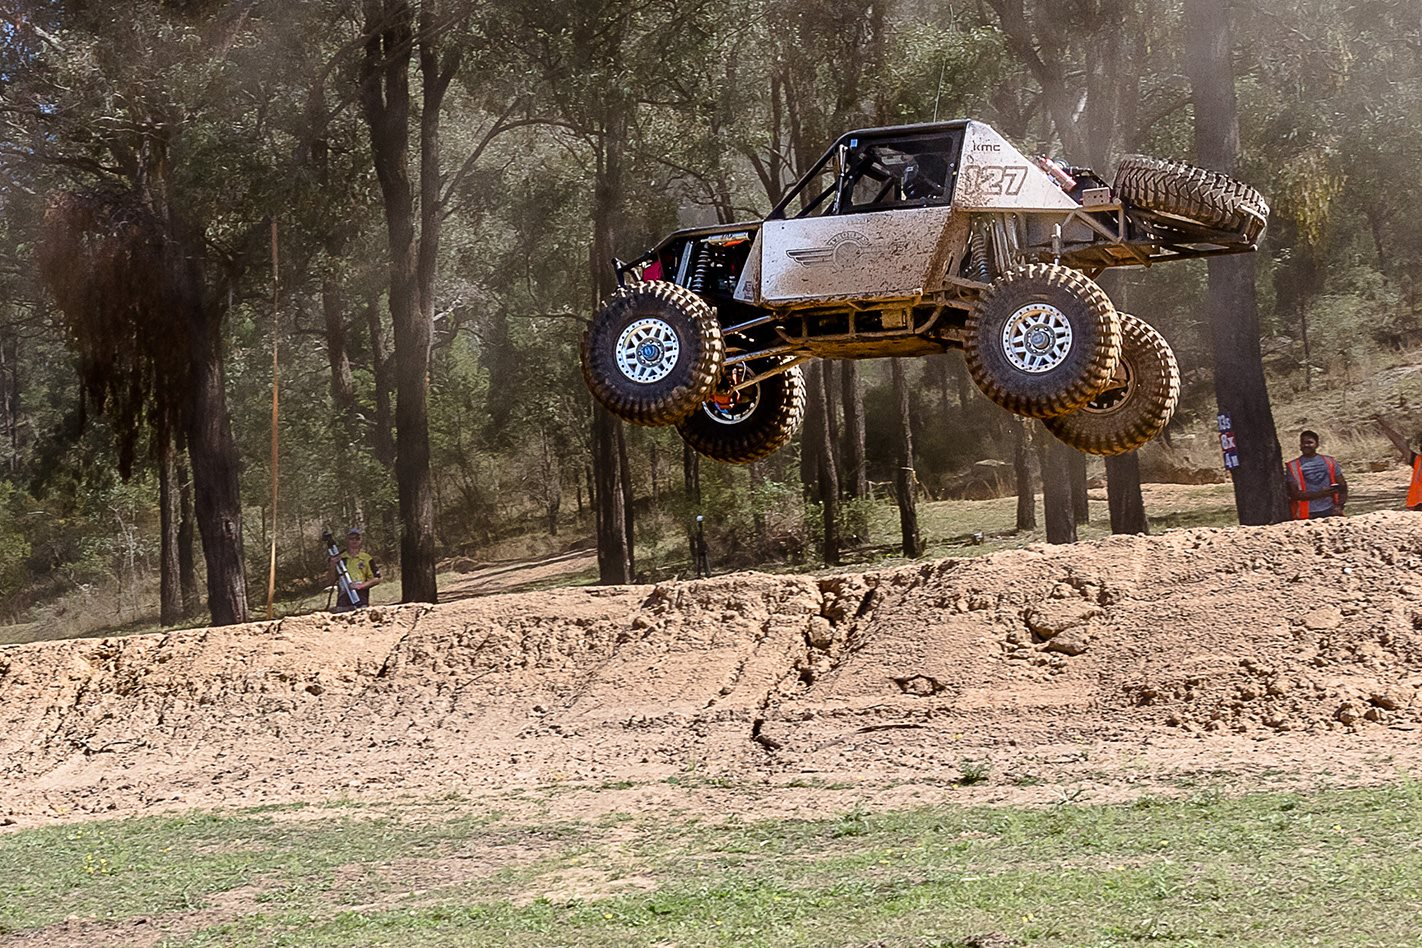 Offroad Aust4 Racing Series Buggy